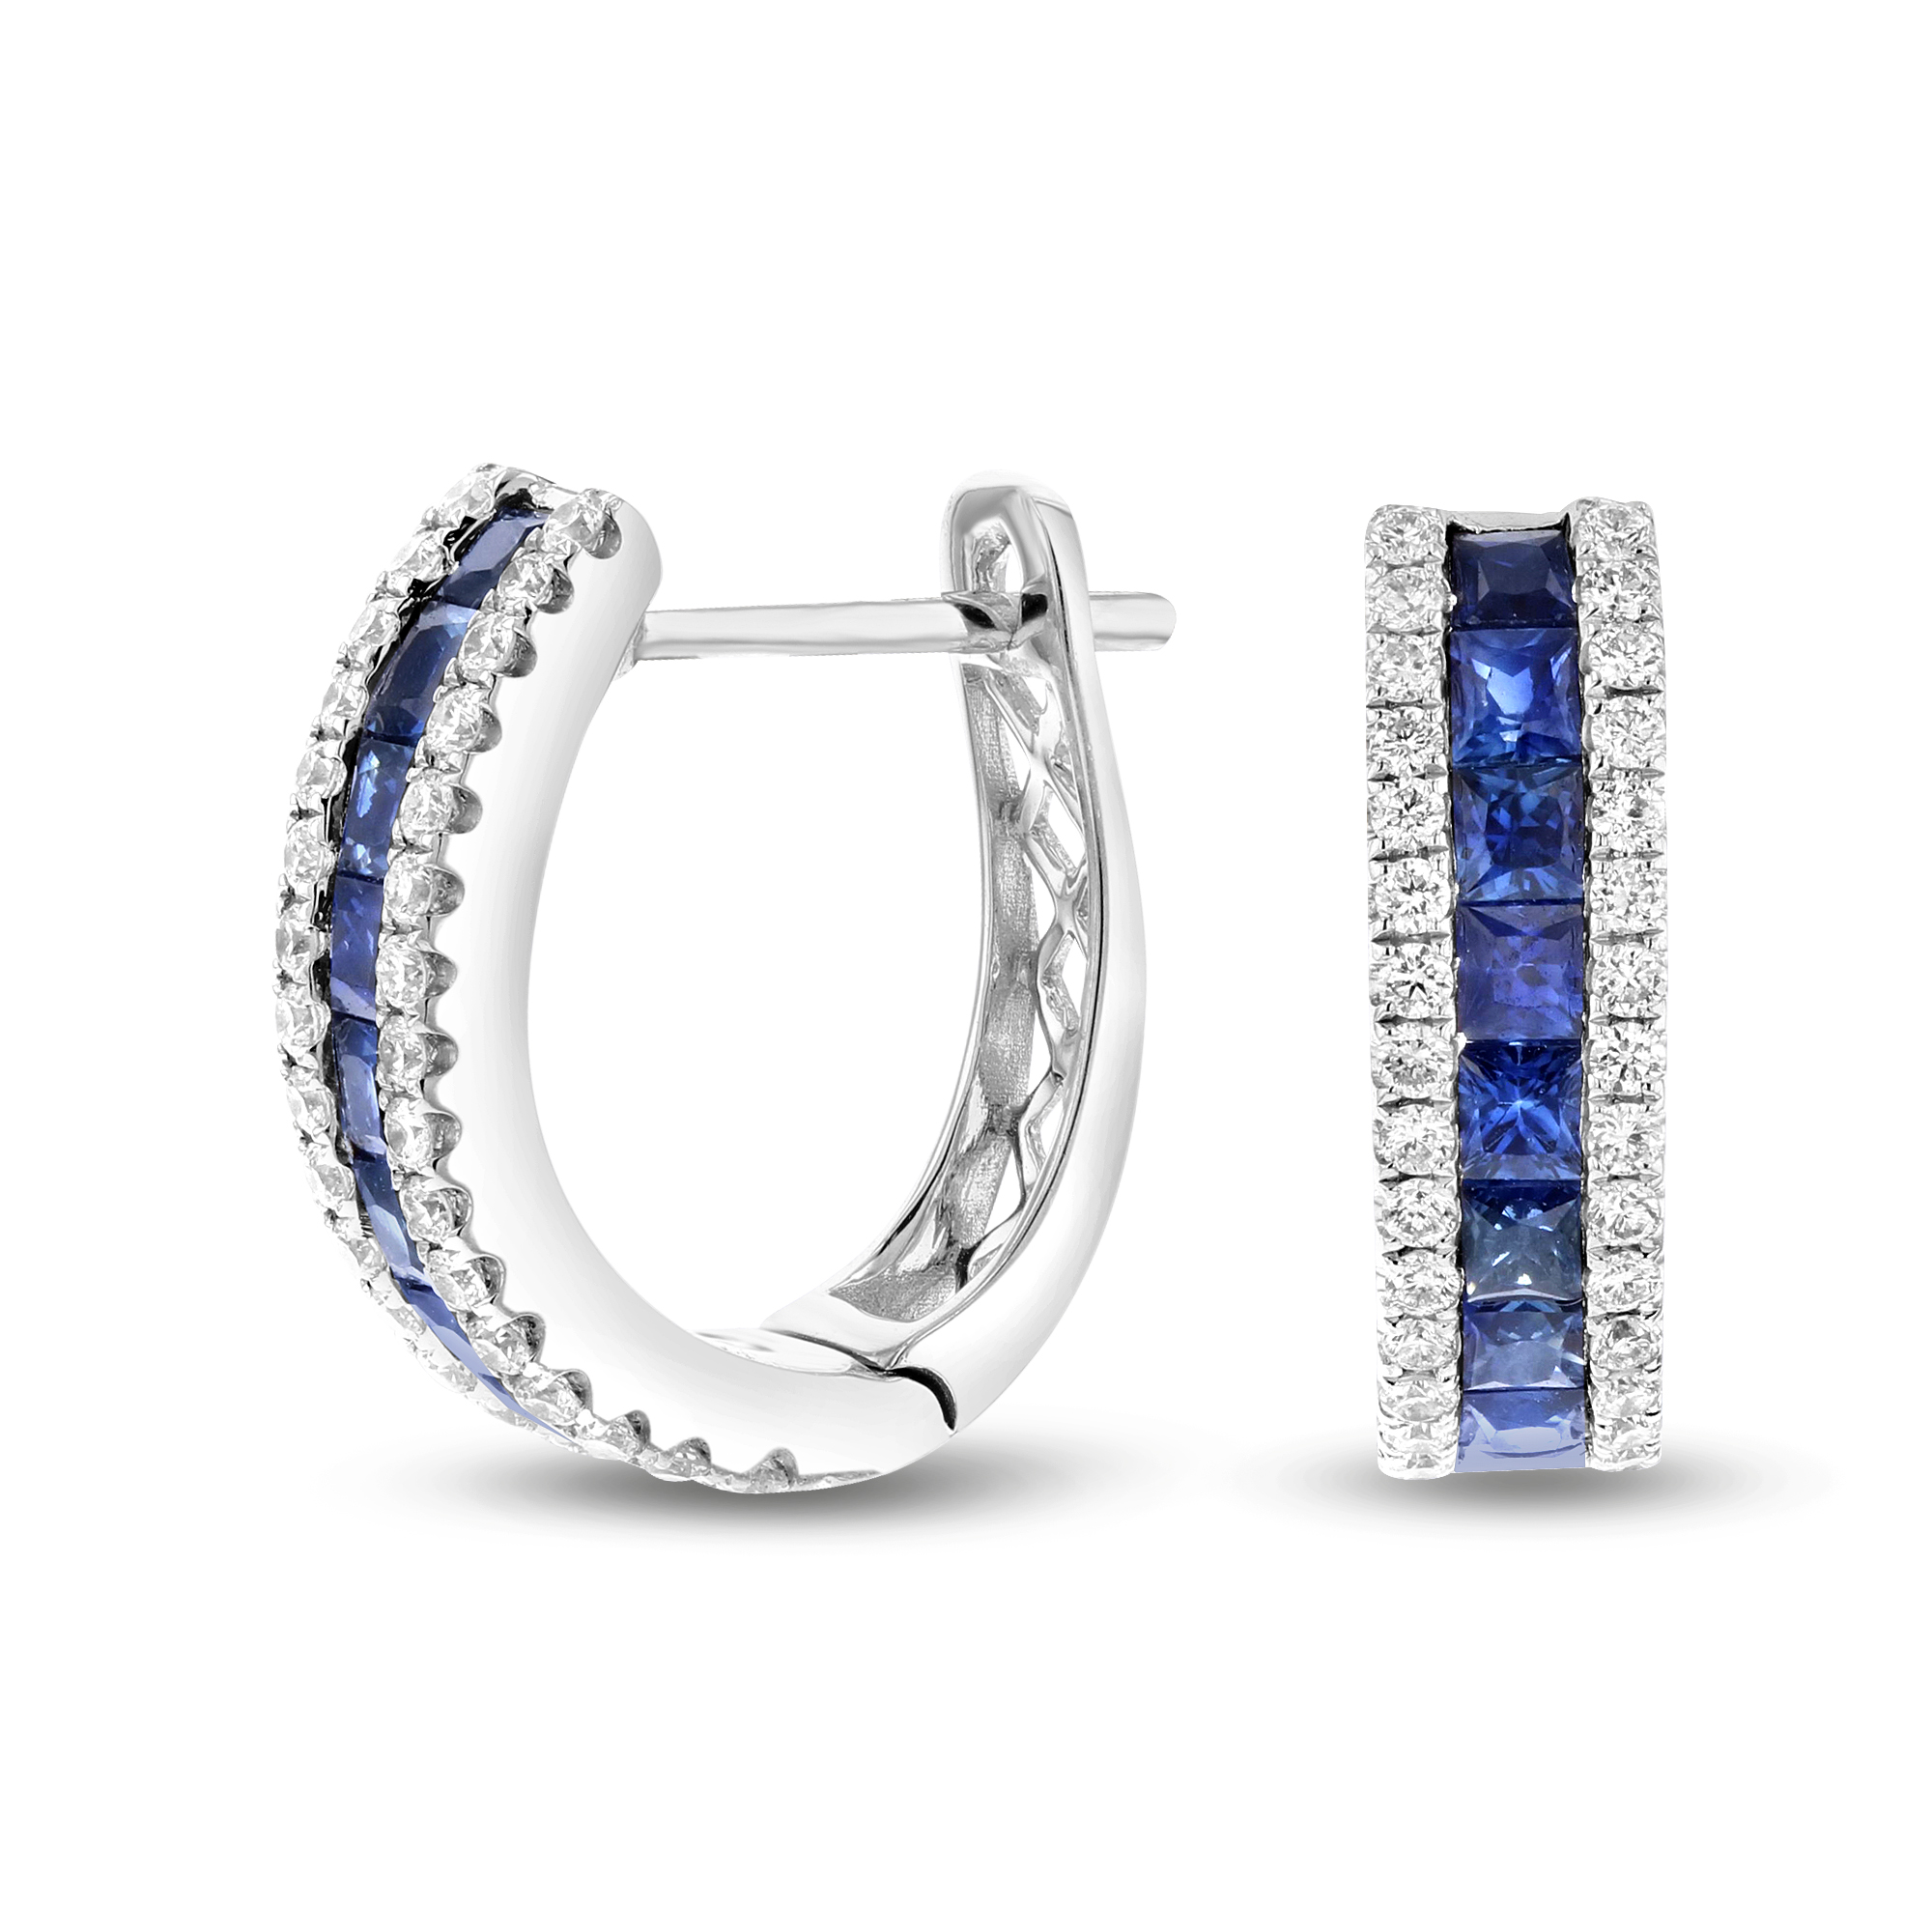 View 1.67ctw Diamond and Sapphire Hoop Earrings in 18k White Gold